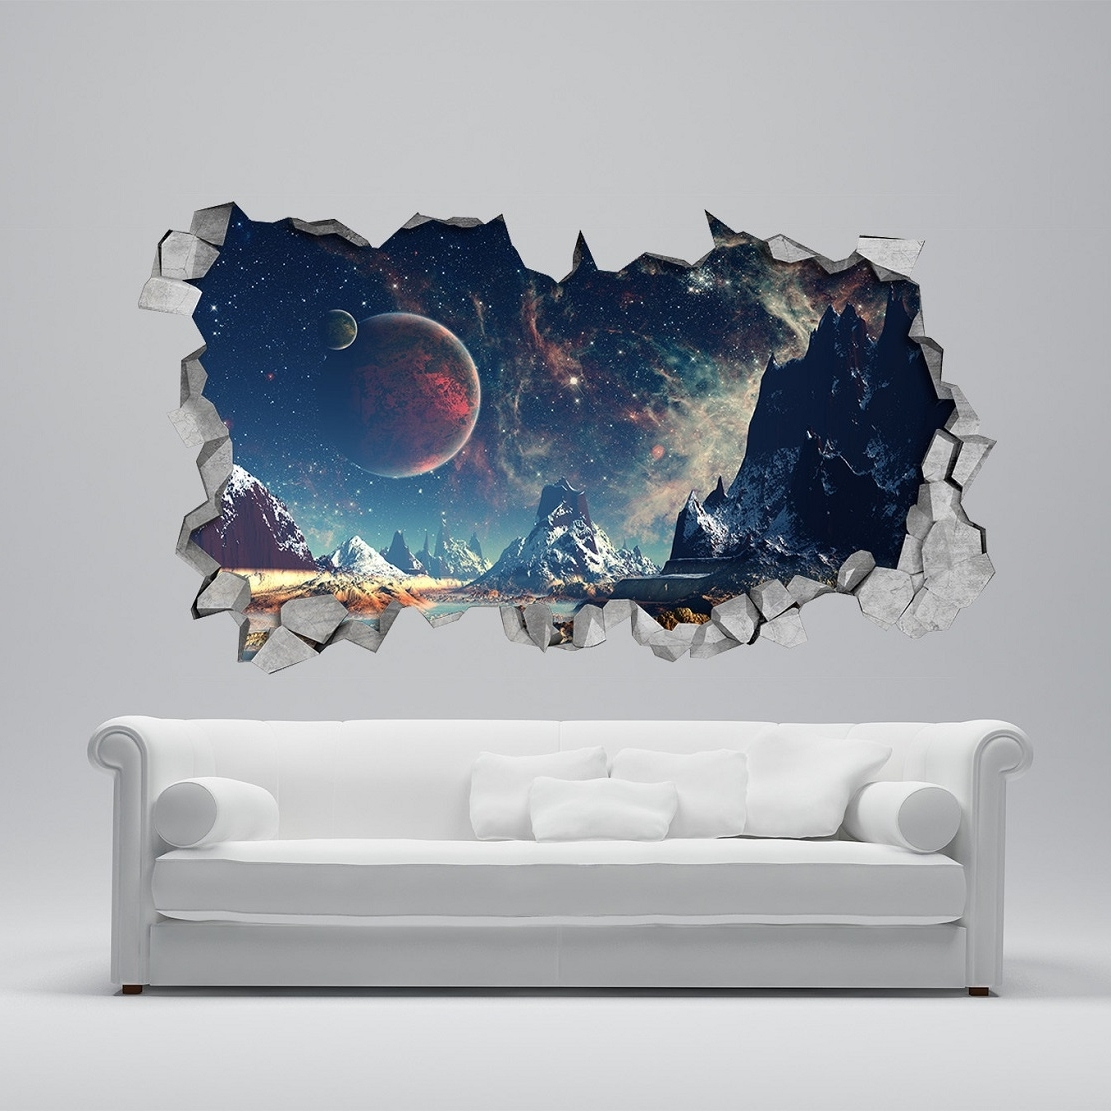 3D Wall Art inside Most Popular 25 Unparalleled 3D Wall Art For Charming Home